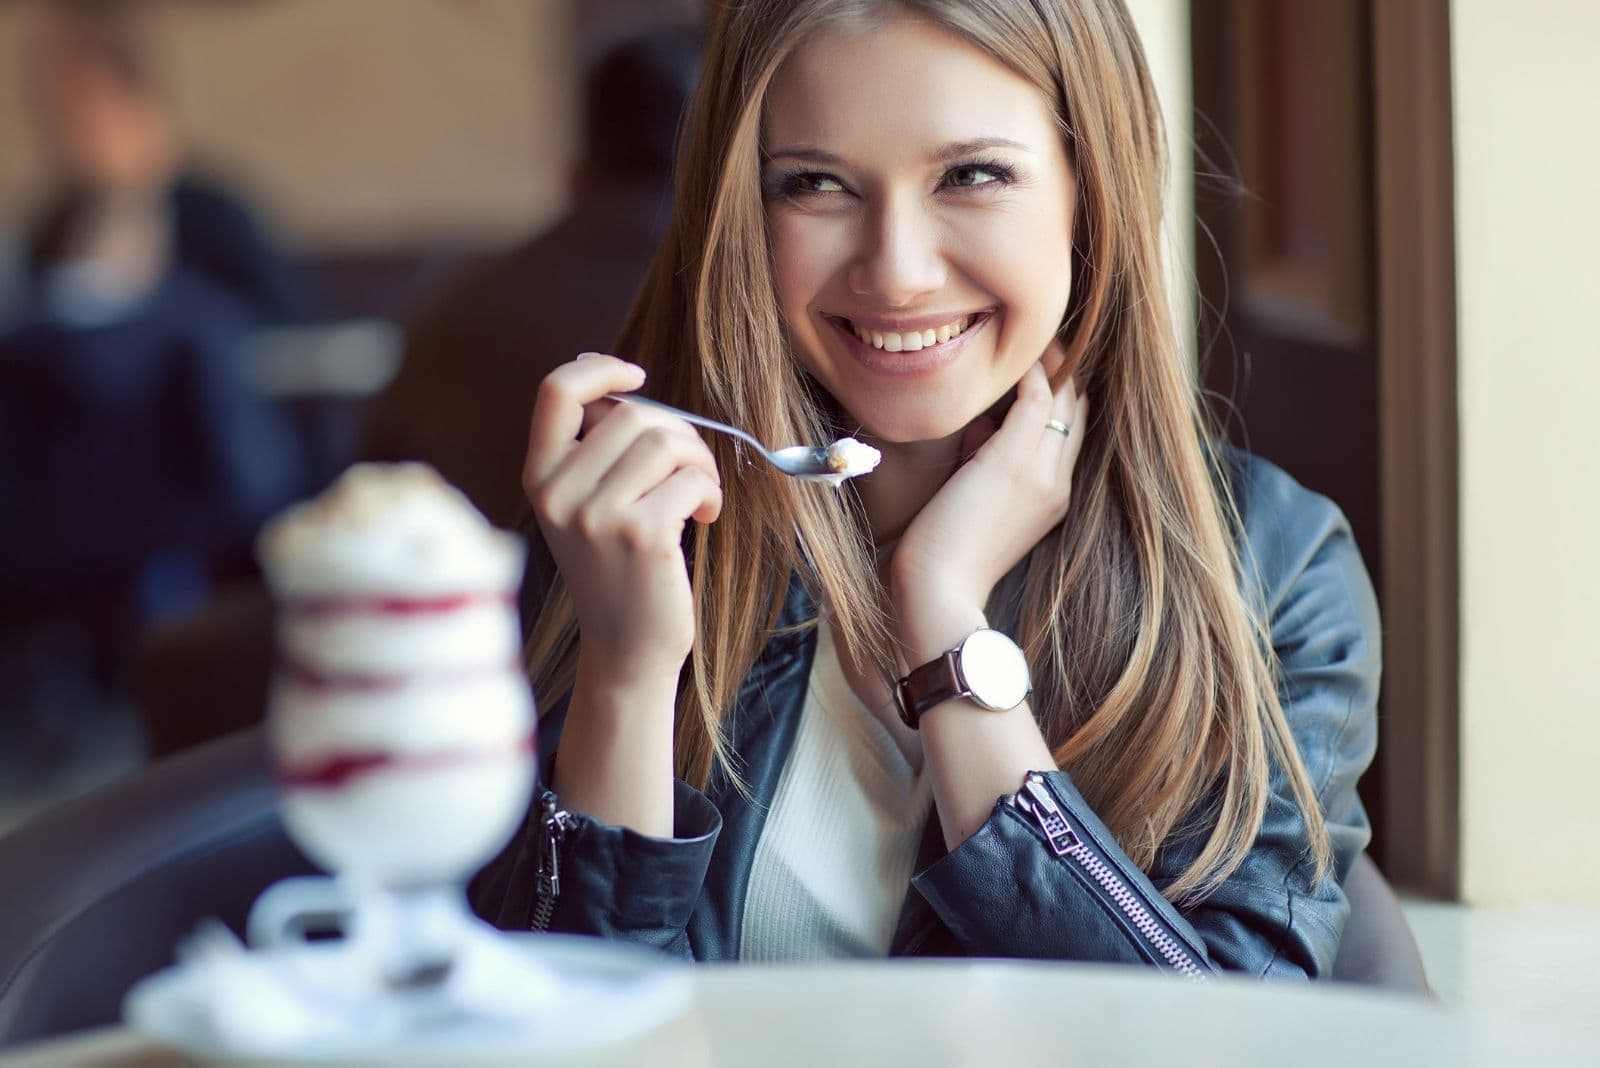 shy woman eating ice cream keeping her hair and smiling inside a cafe